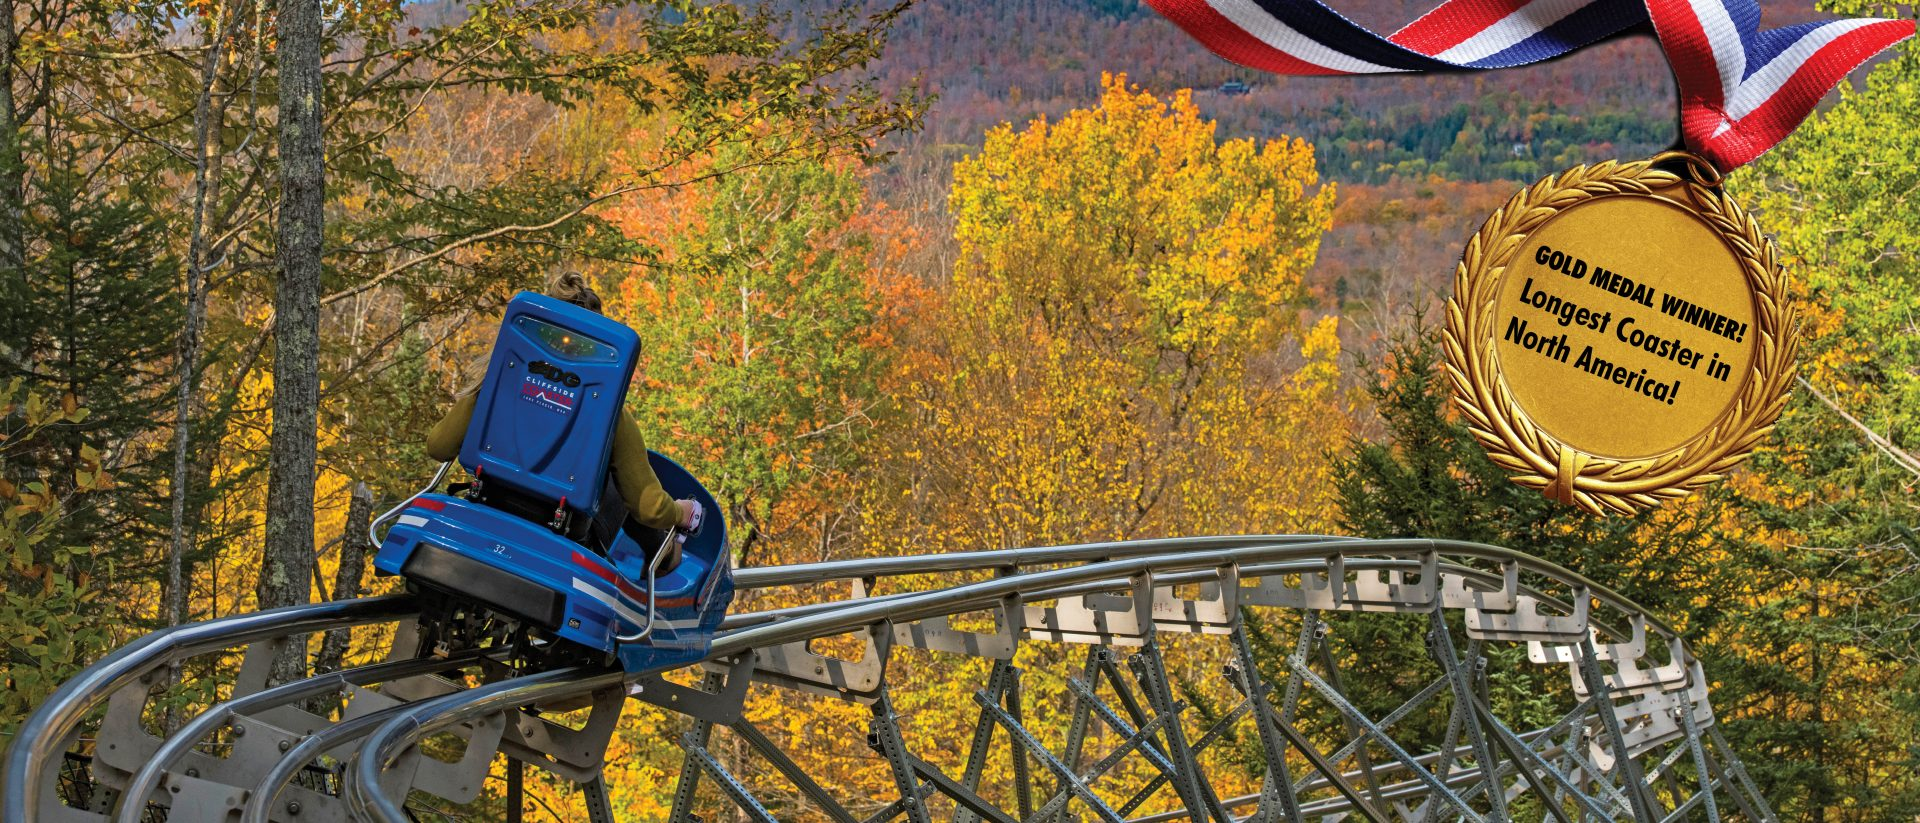 cliffside lake placid mountain coaster